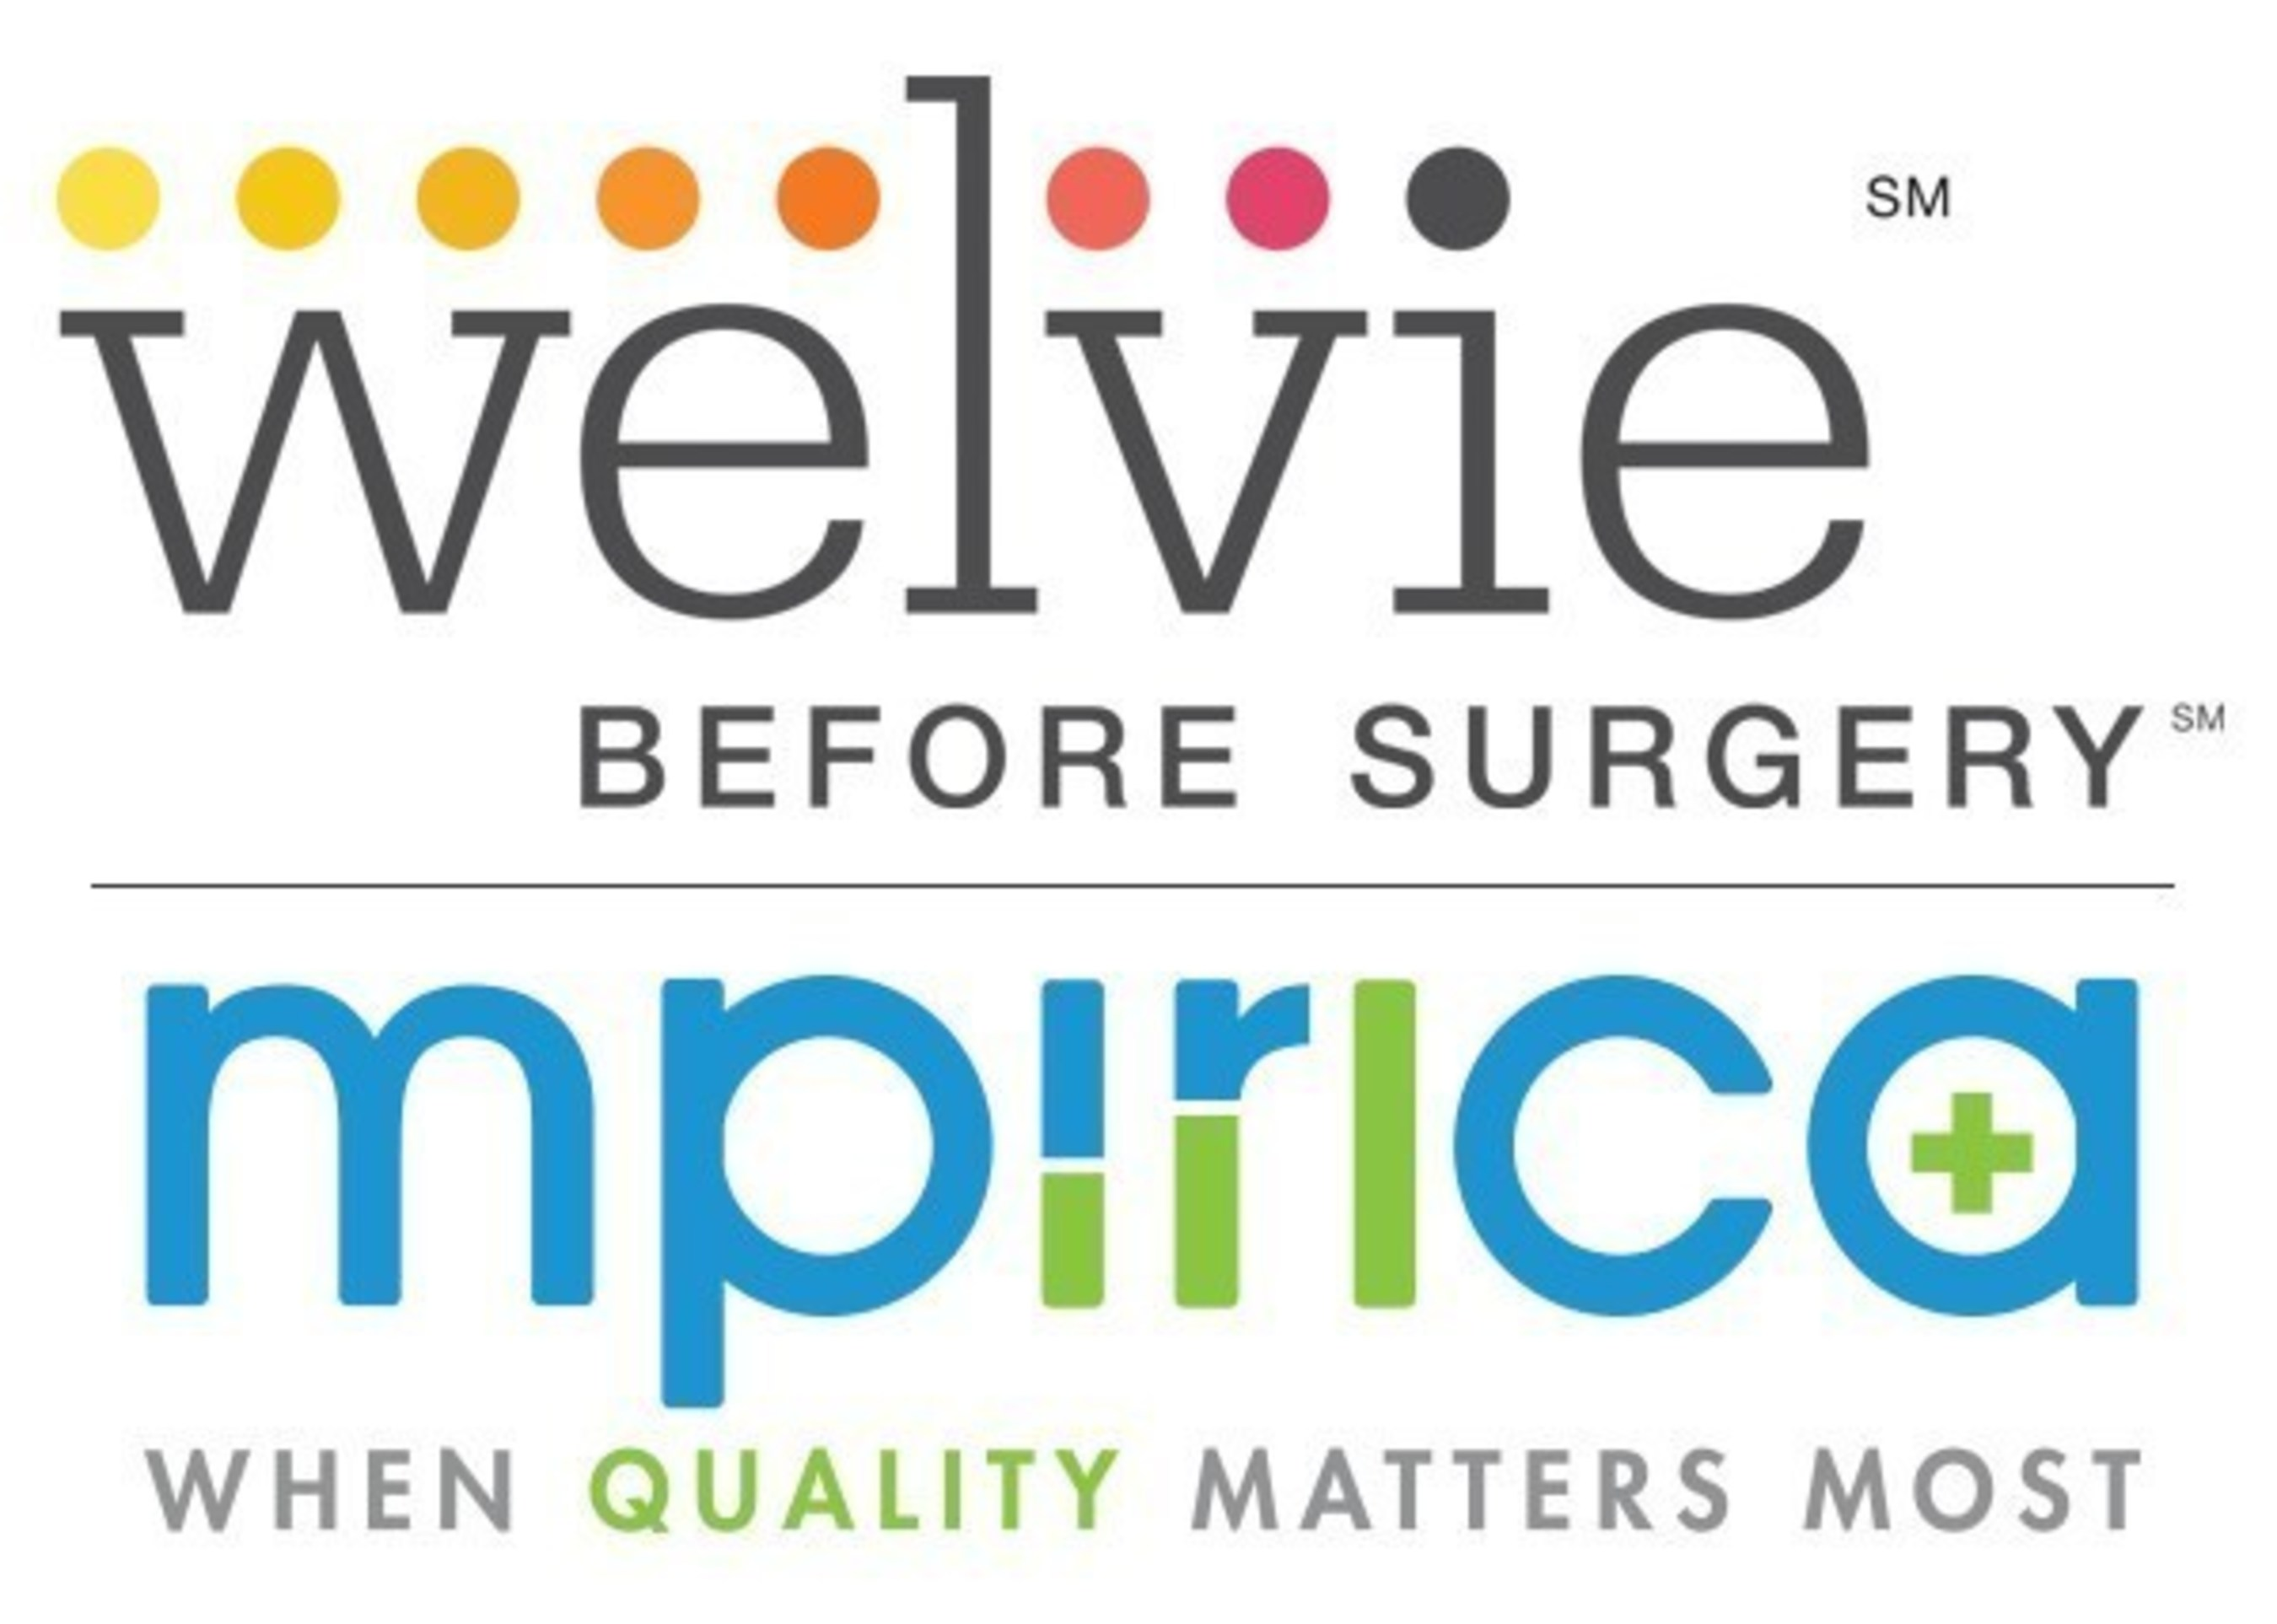 Welvie and MPIRICA logos. Welvie, the nation's leading surgery decision-support company now offers MPIRICA Quality Scores in its platform to enhance patients' ability to choose the best performing surgeon and hospital. More info at: http://www.welvie.com or https://www.mpirica.com